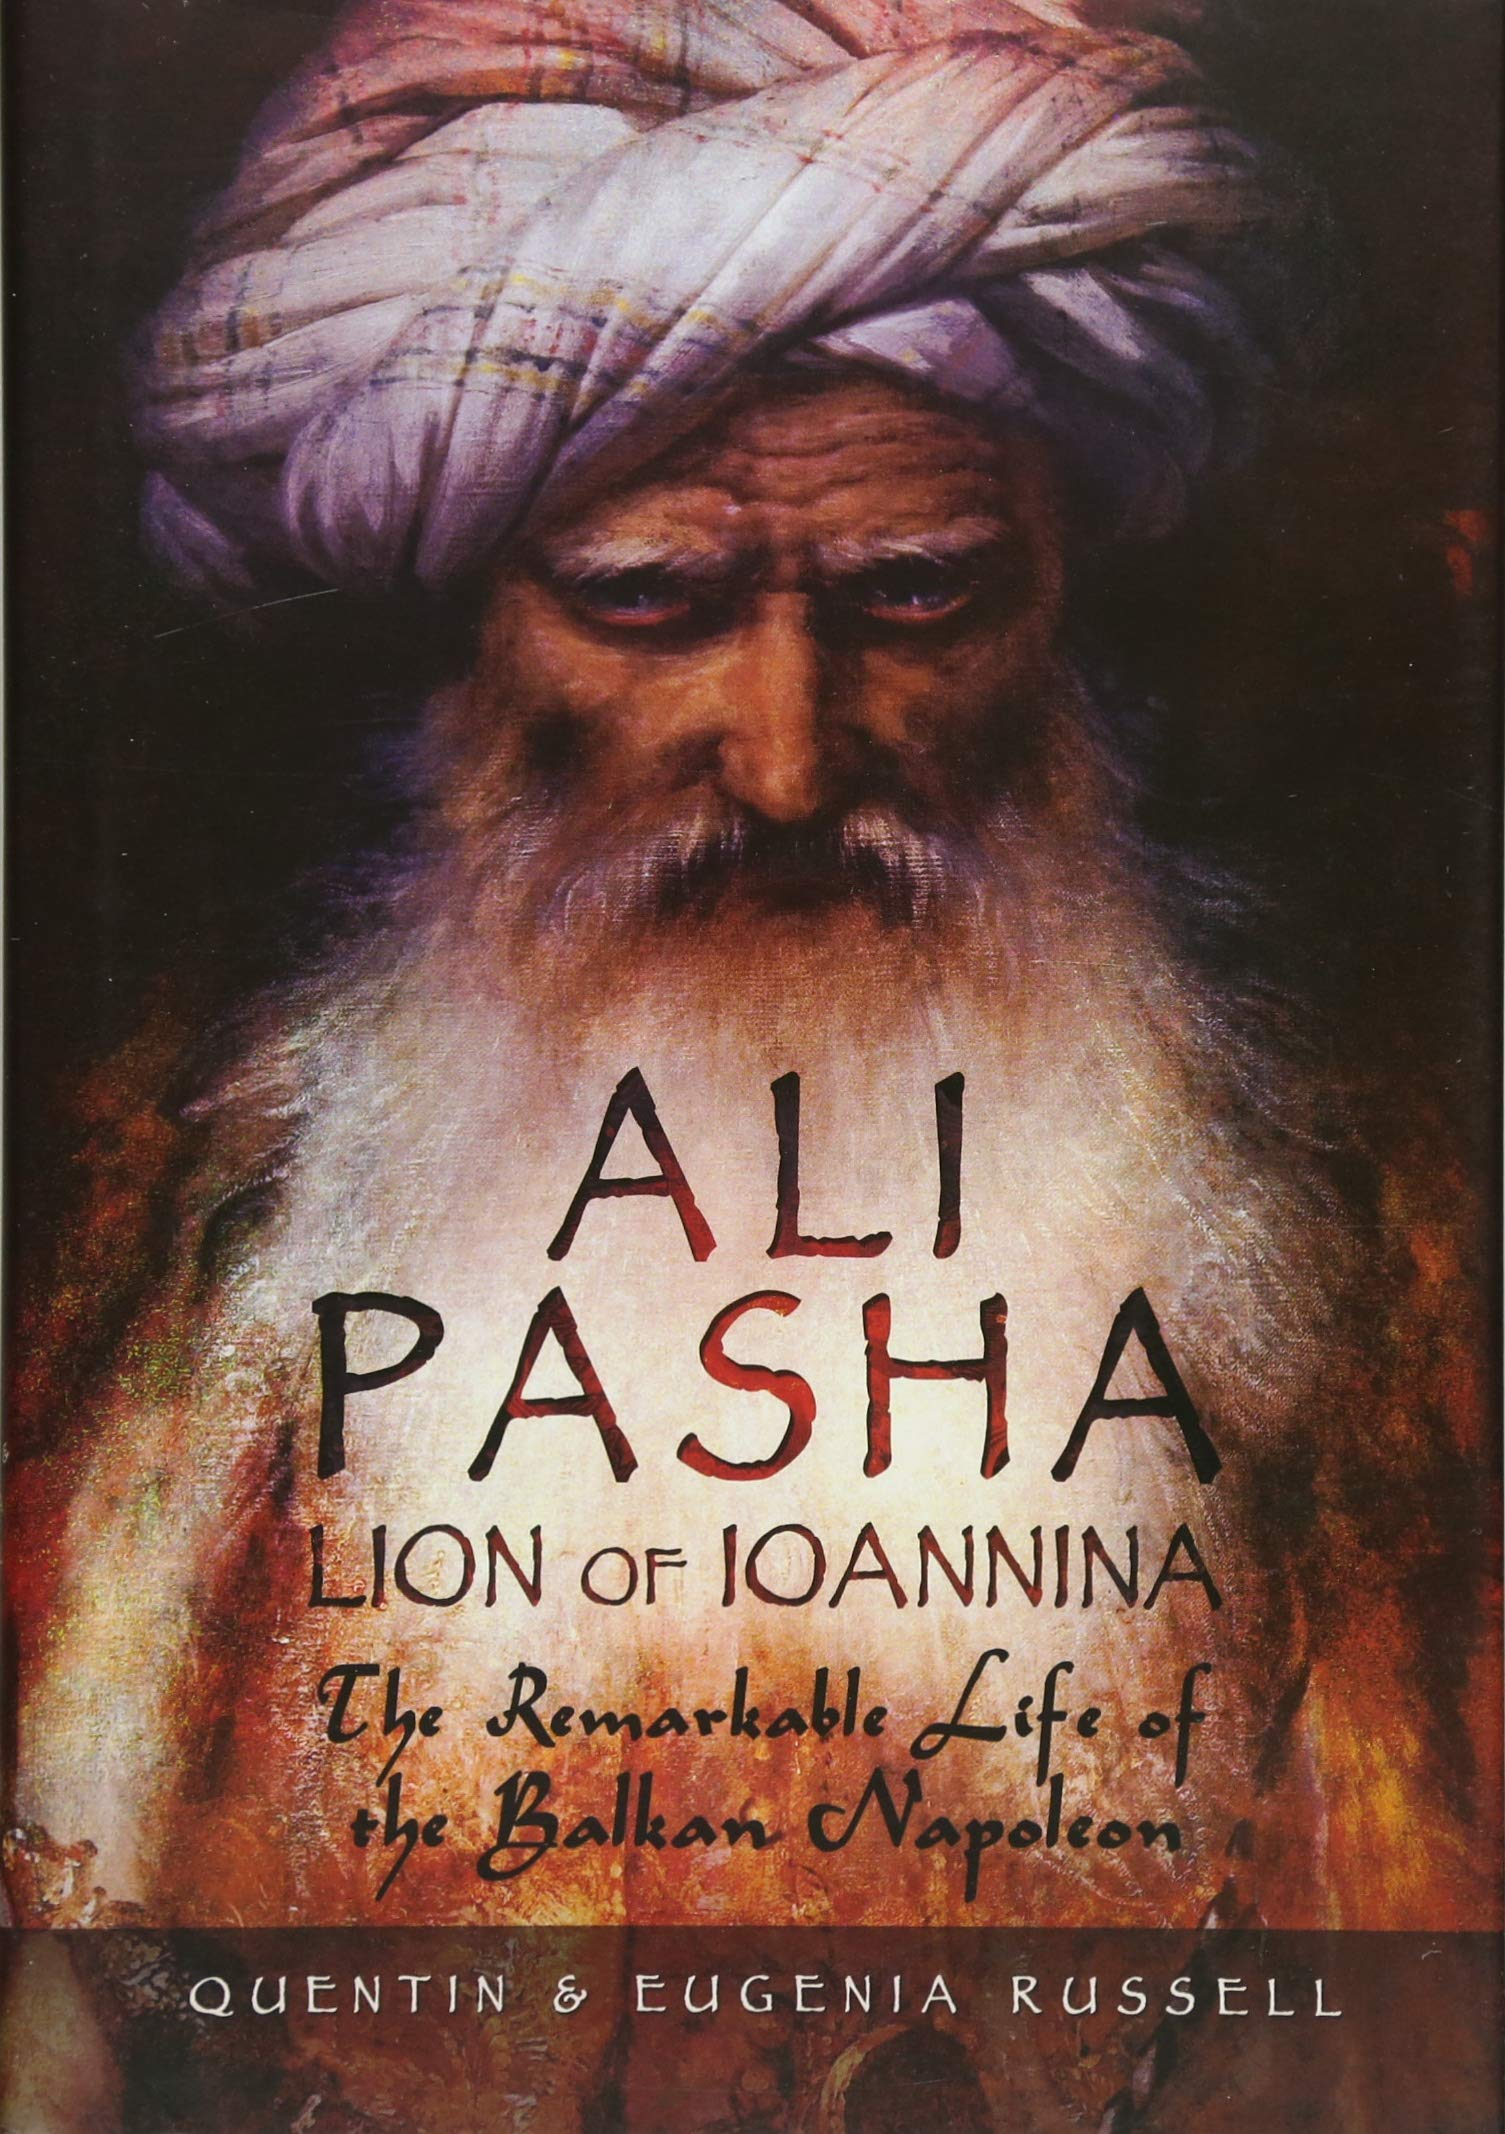 Ali Pasha, Lion of Ioannina: The Remarkable Life of the Balkan Napoleon by Pen and Sword Military